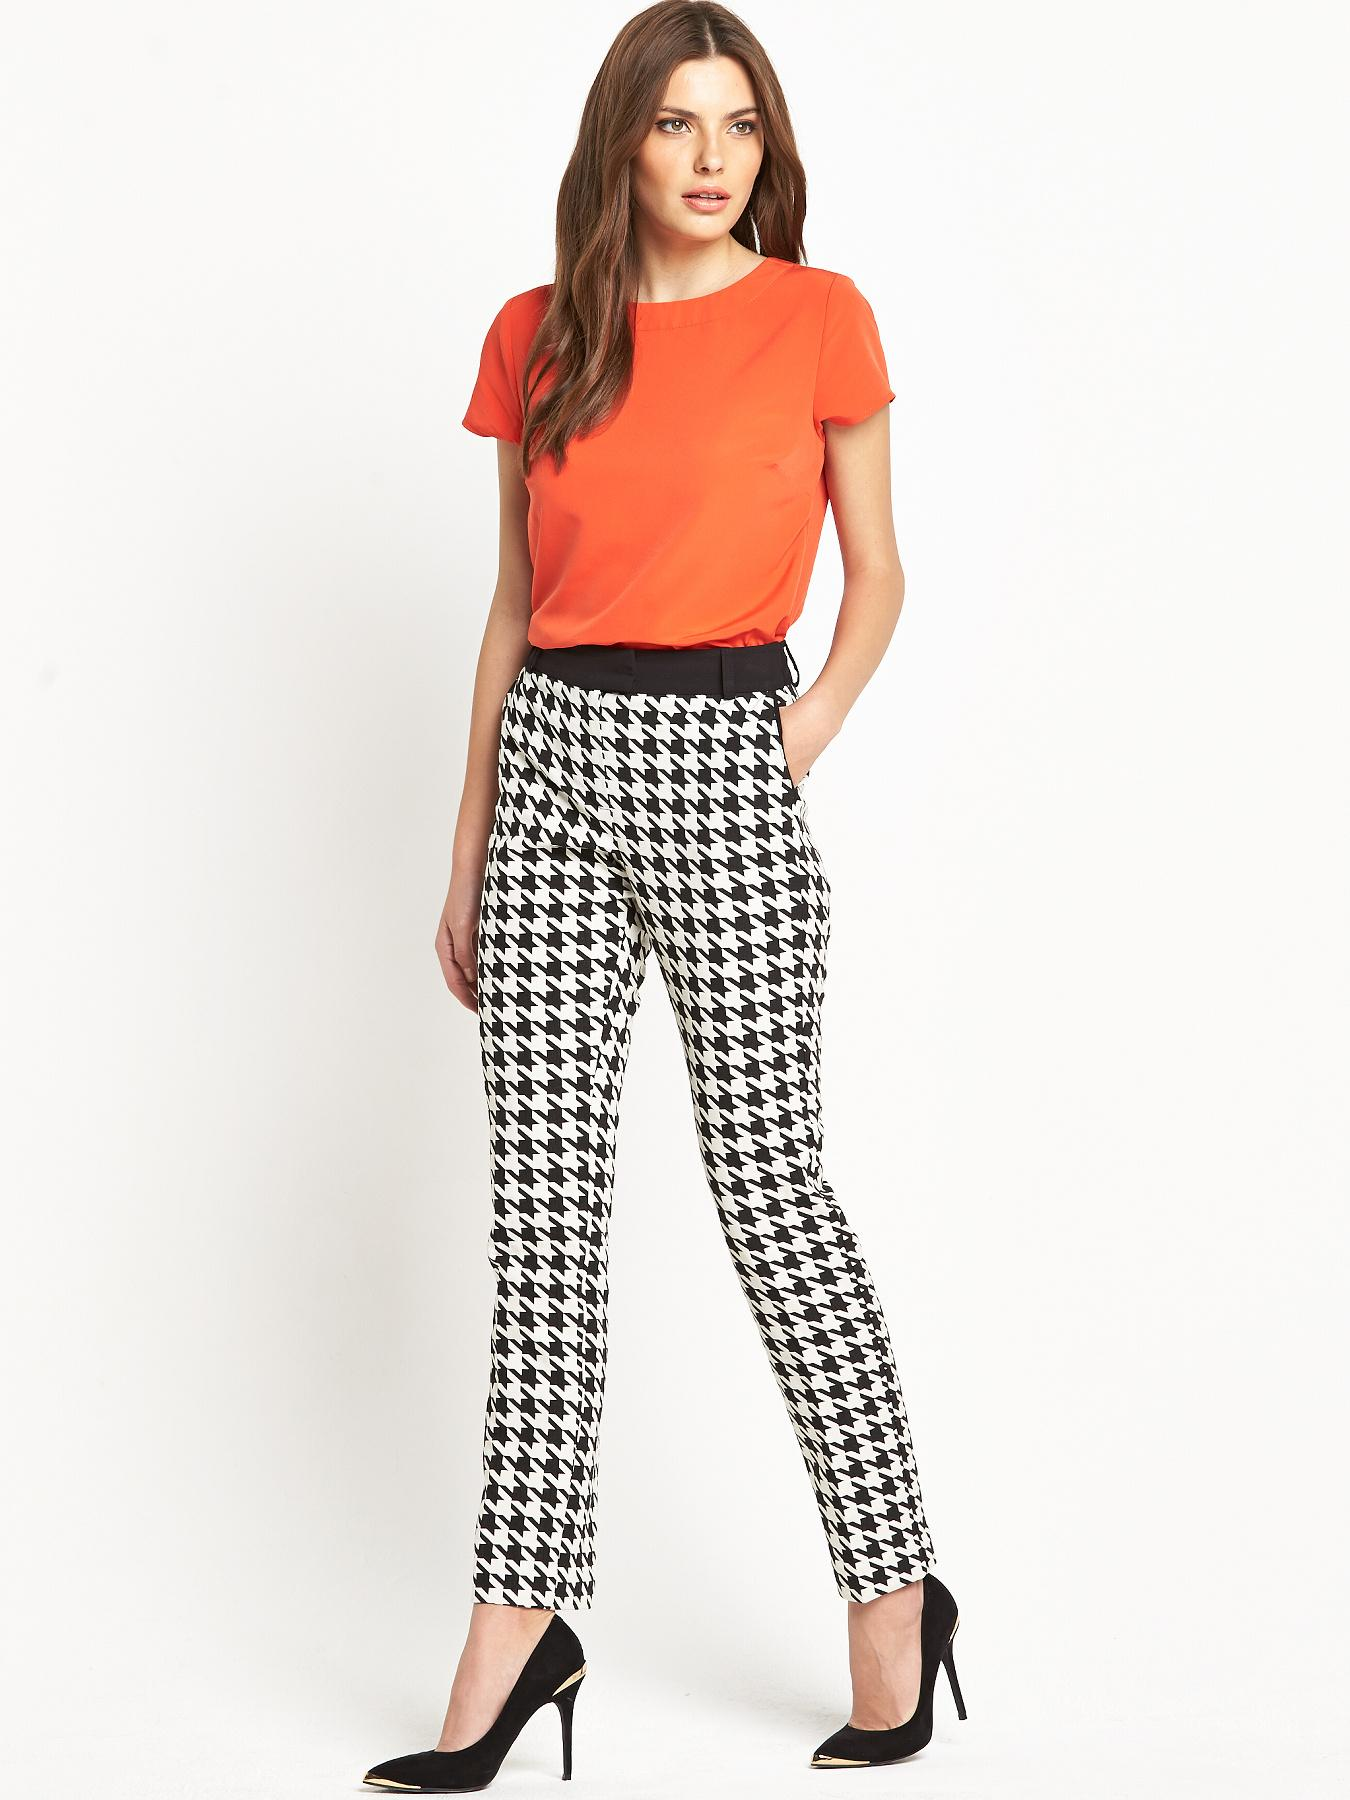 Definitions Oversize Jacquard Houndstooth Skinny 78 Trousers